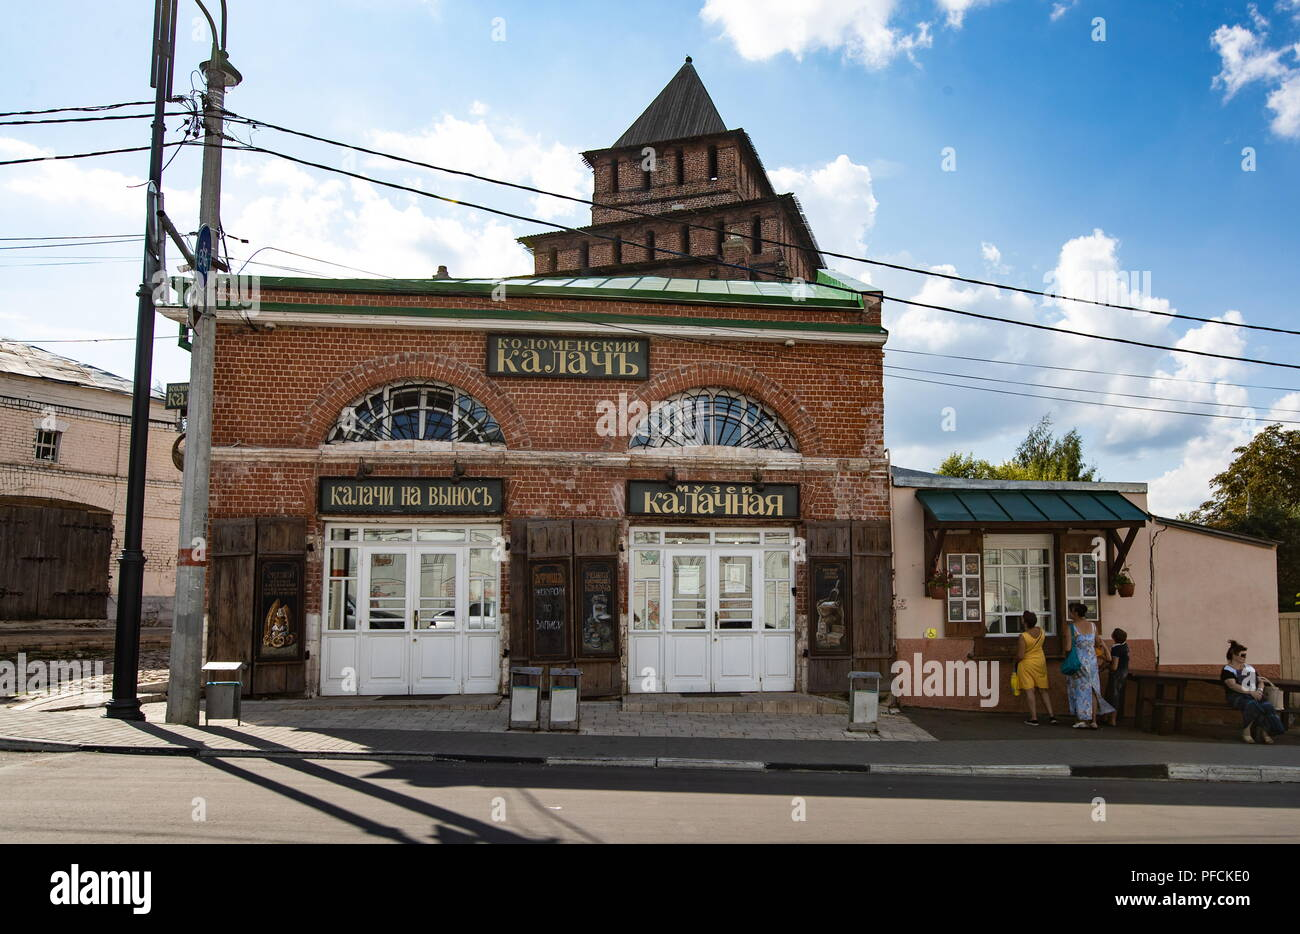 Kolomna, Russia. 20th Aug, 2018. MOSCOW REGION, RUSSIA - AUGUST 20, 2018: A view of the Kalachnaya Museum in the town of Kolomna. The museum explores the traditional baking process of Kalach, a small loaf of bread. Stanislav Krasilnikov/TASS Credit: ITAR-TASS News Agency/Alamy Live News Stock Photo